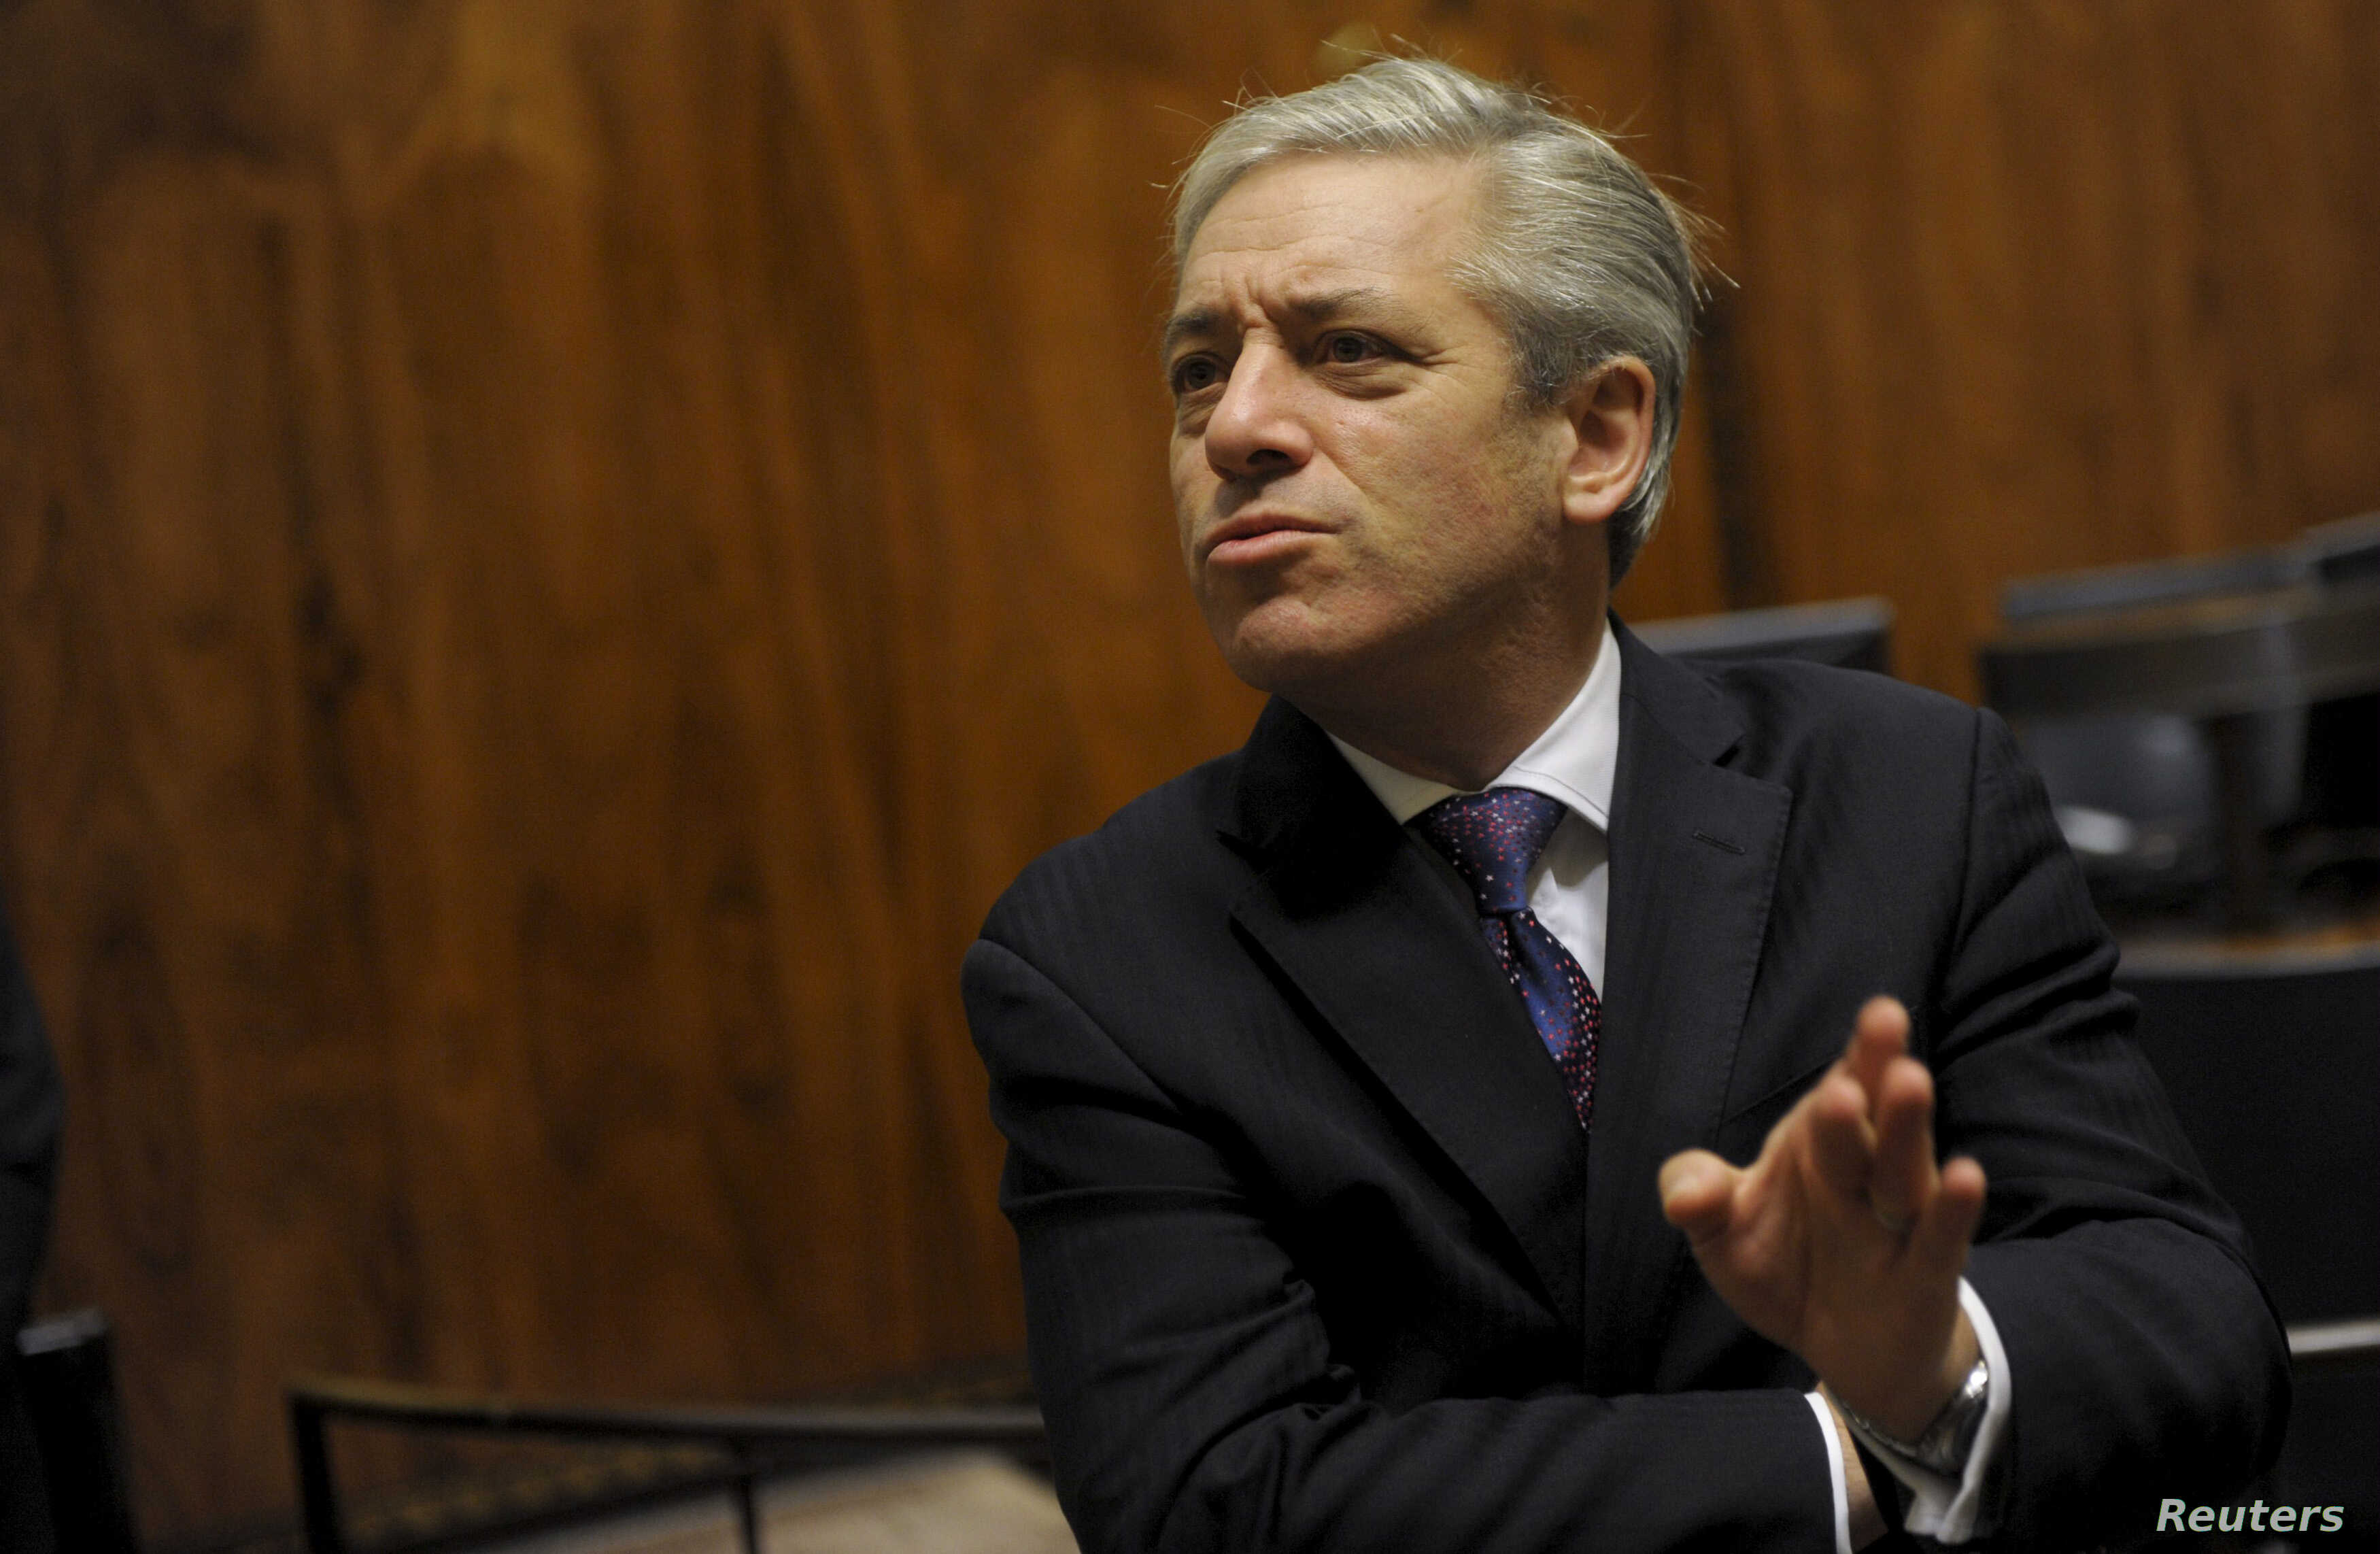 Britain's John Bercow, Speaker of the House of Commons, speaks to Eero Heinaluoma (not pictured), Speaker of the Parliament of Finland, during a meeting in the Finnish parliament in Helsinki, October 8, 2012.